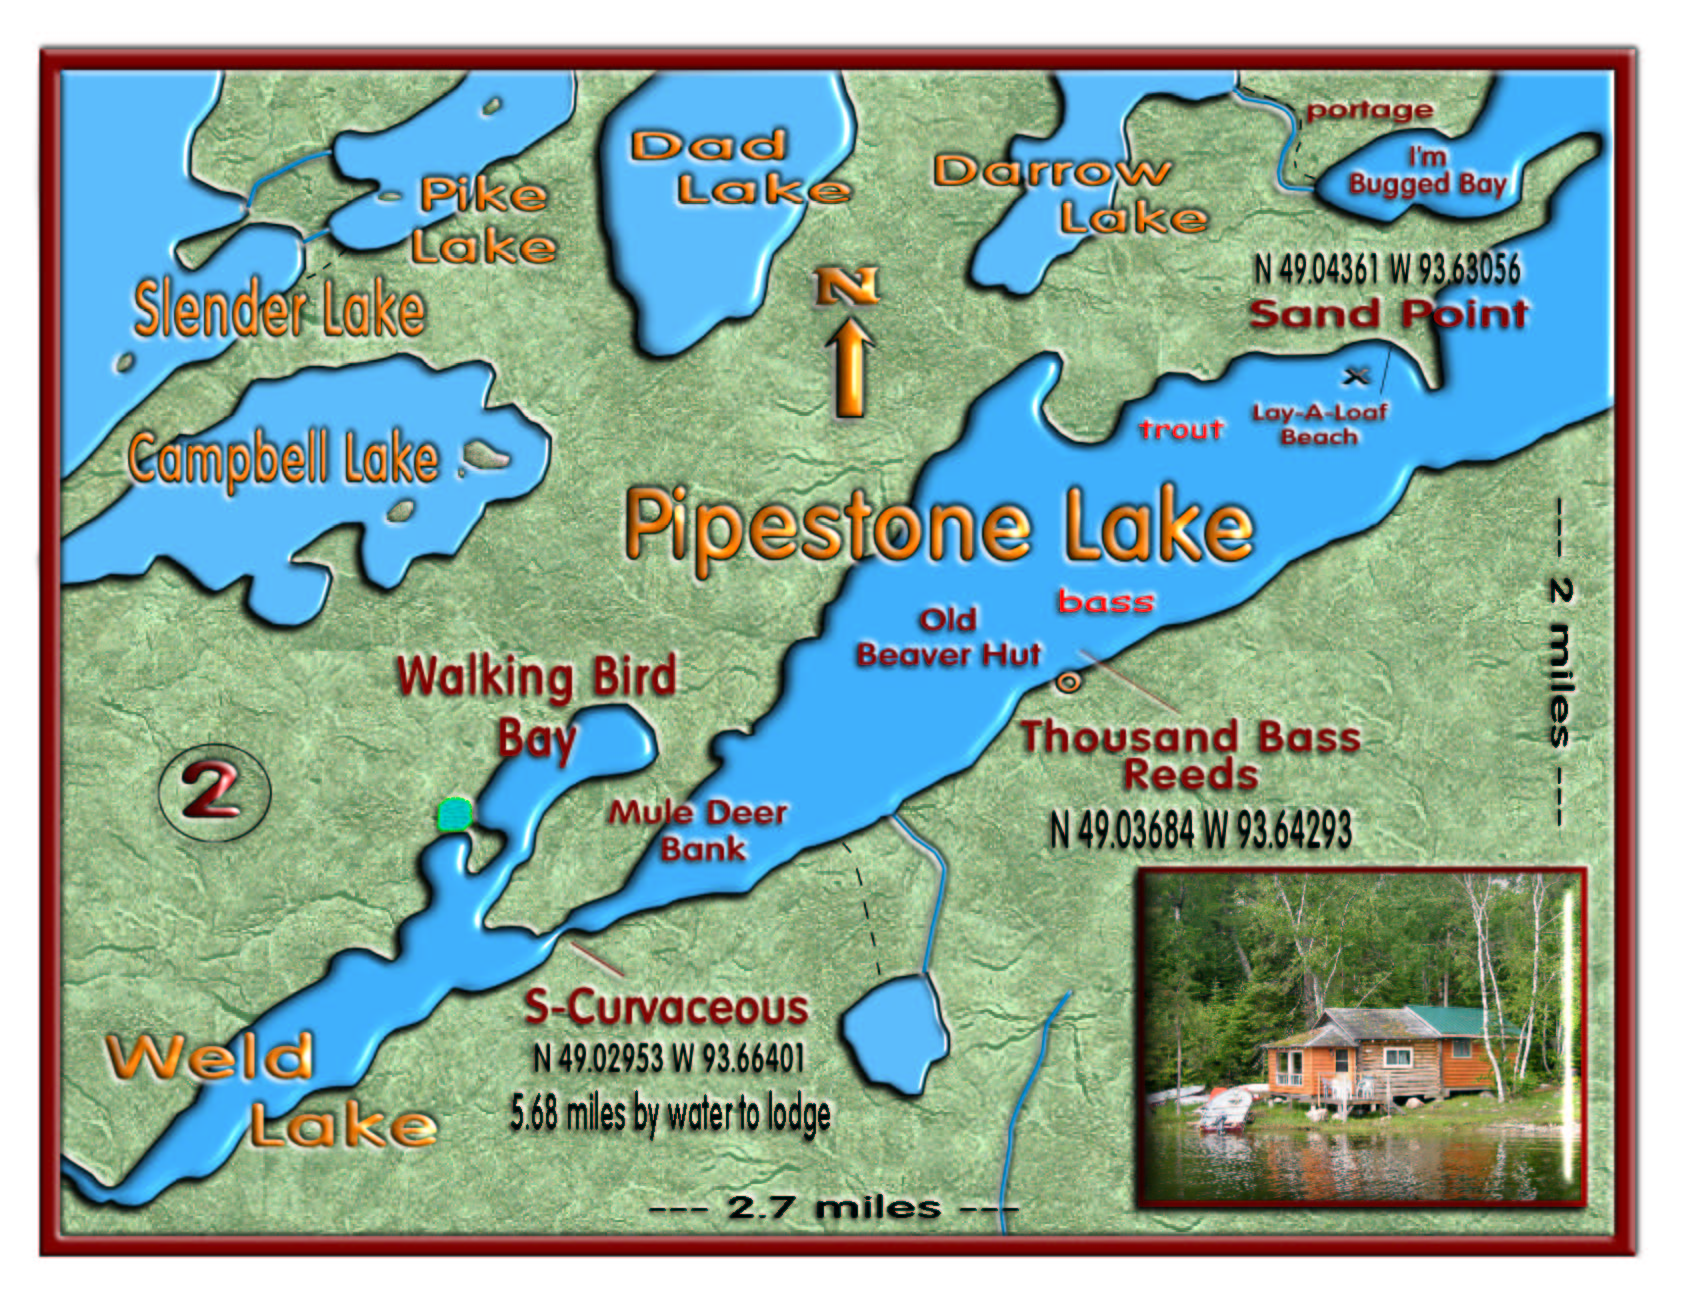 Weld Lake/Pipestone Trail map